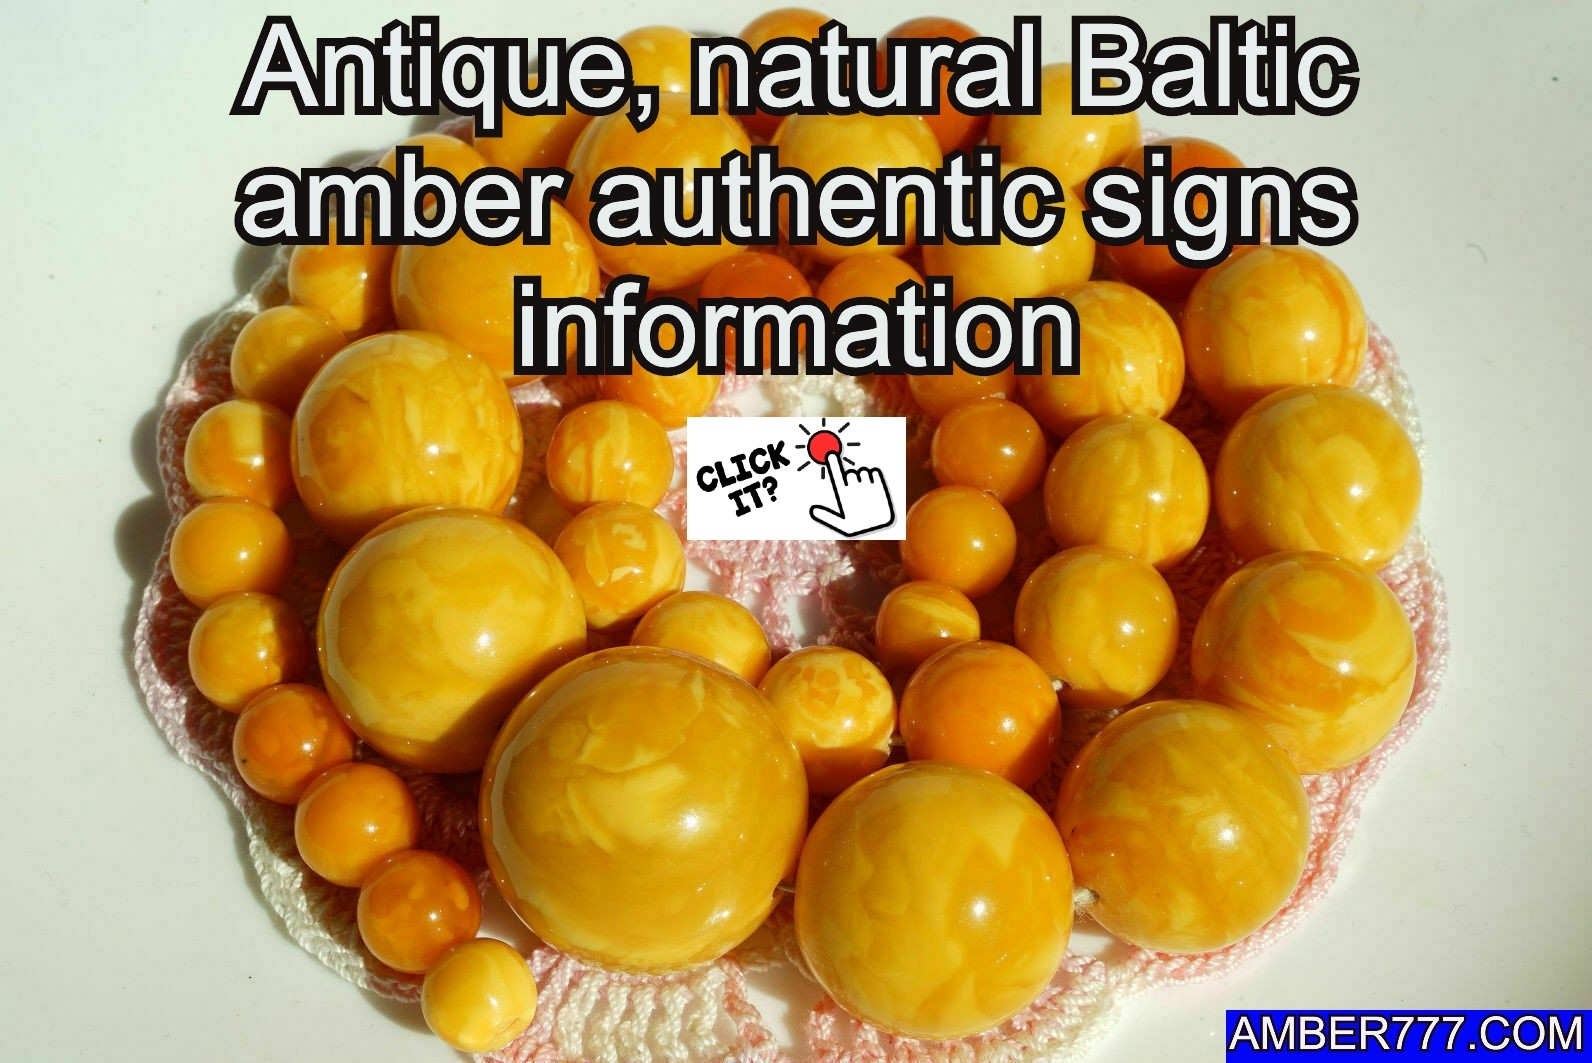 Antique, natural Baltic amber authentic Signs, test.